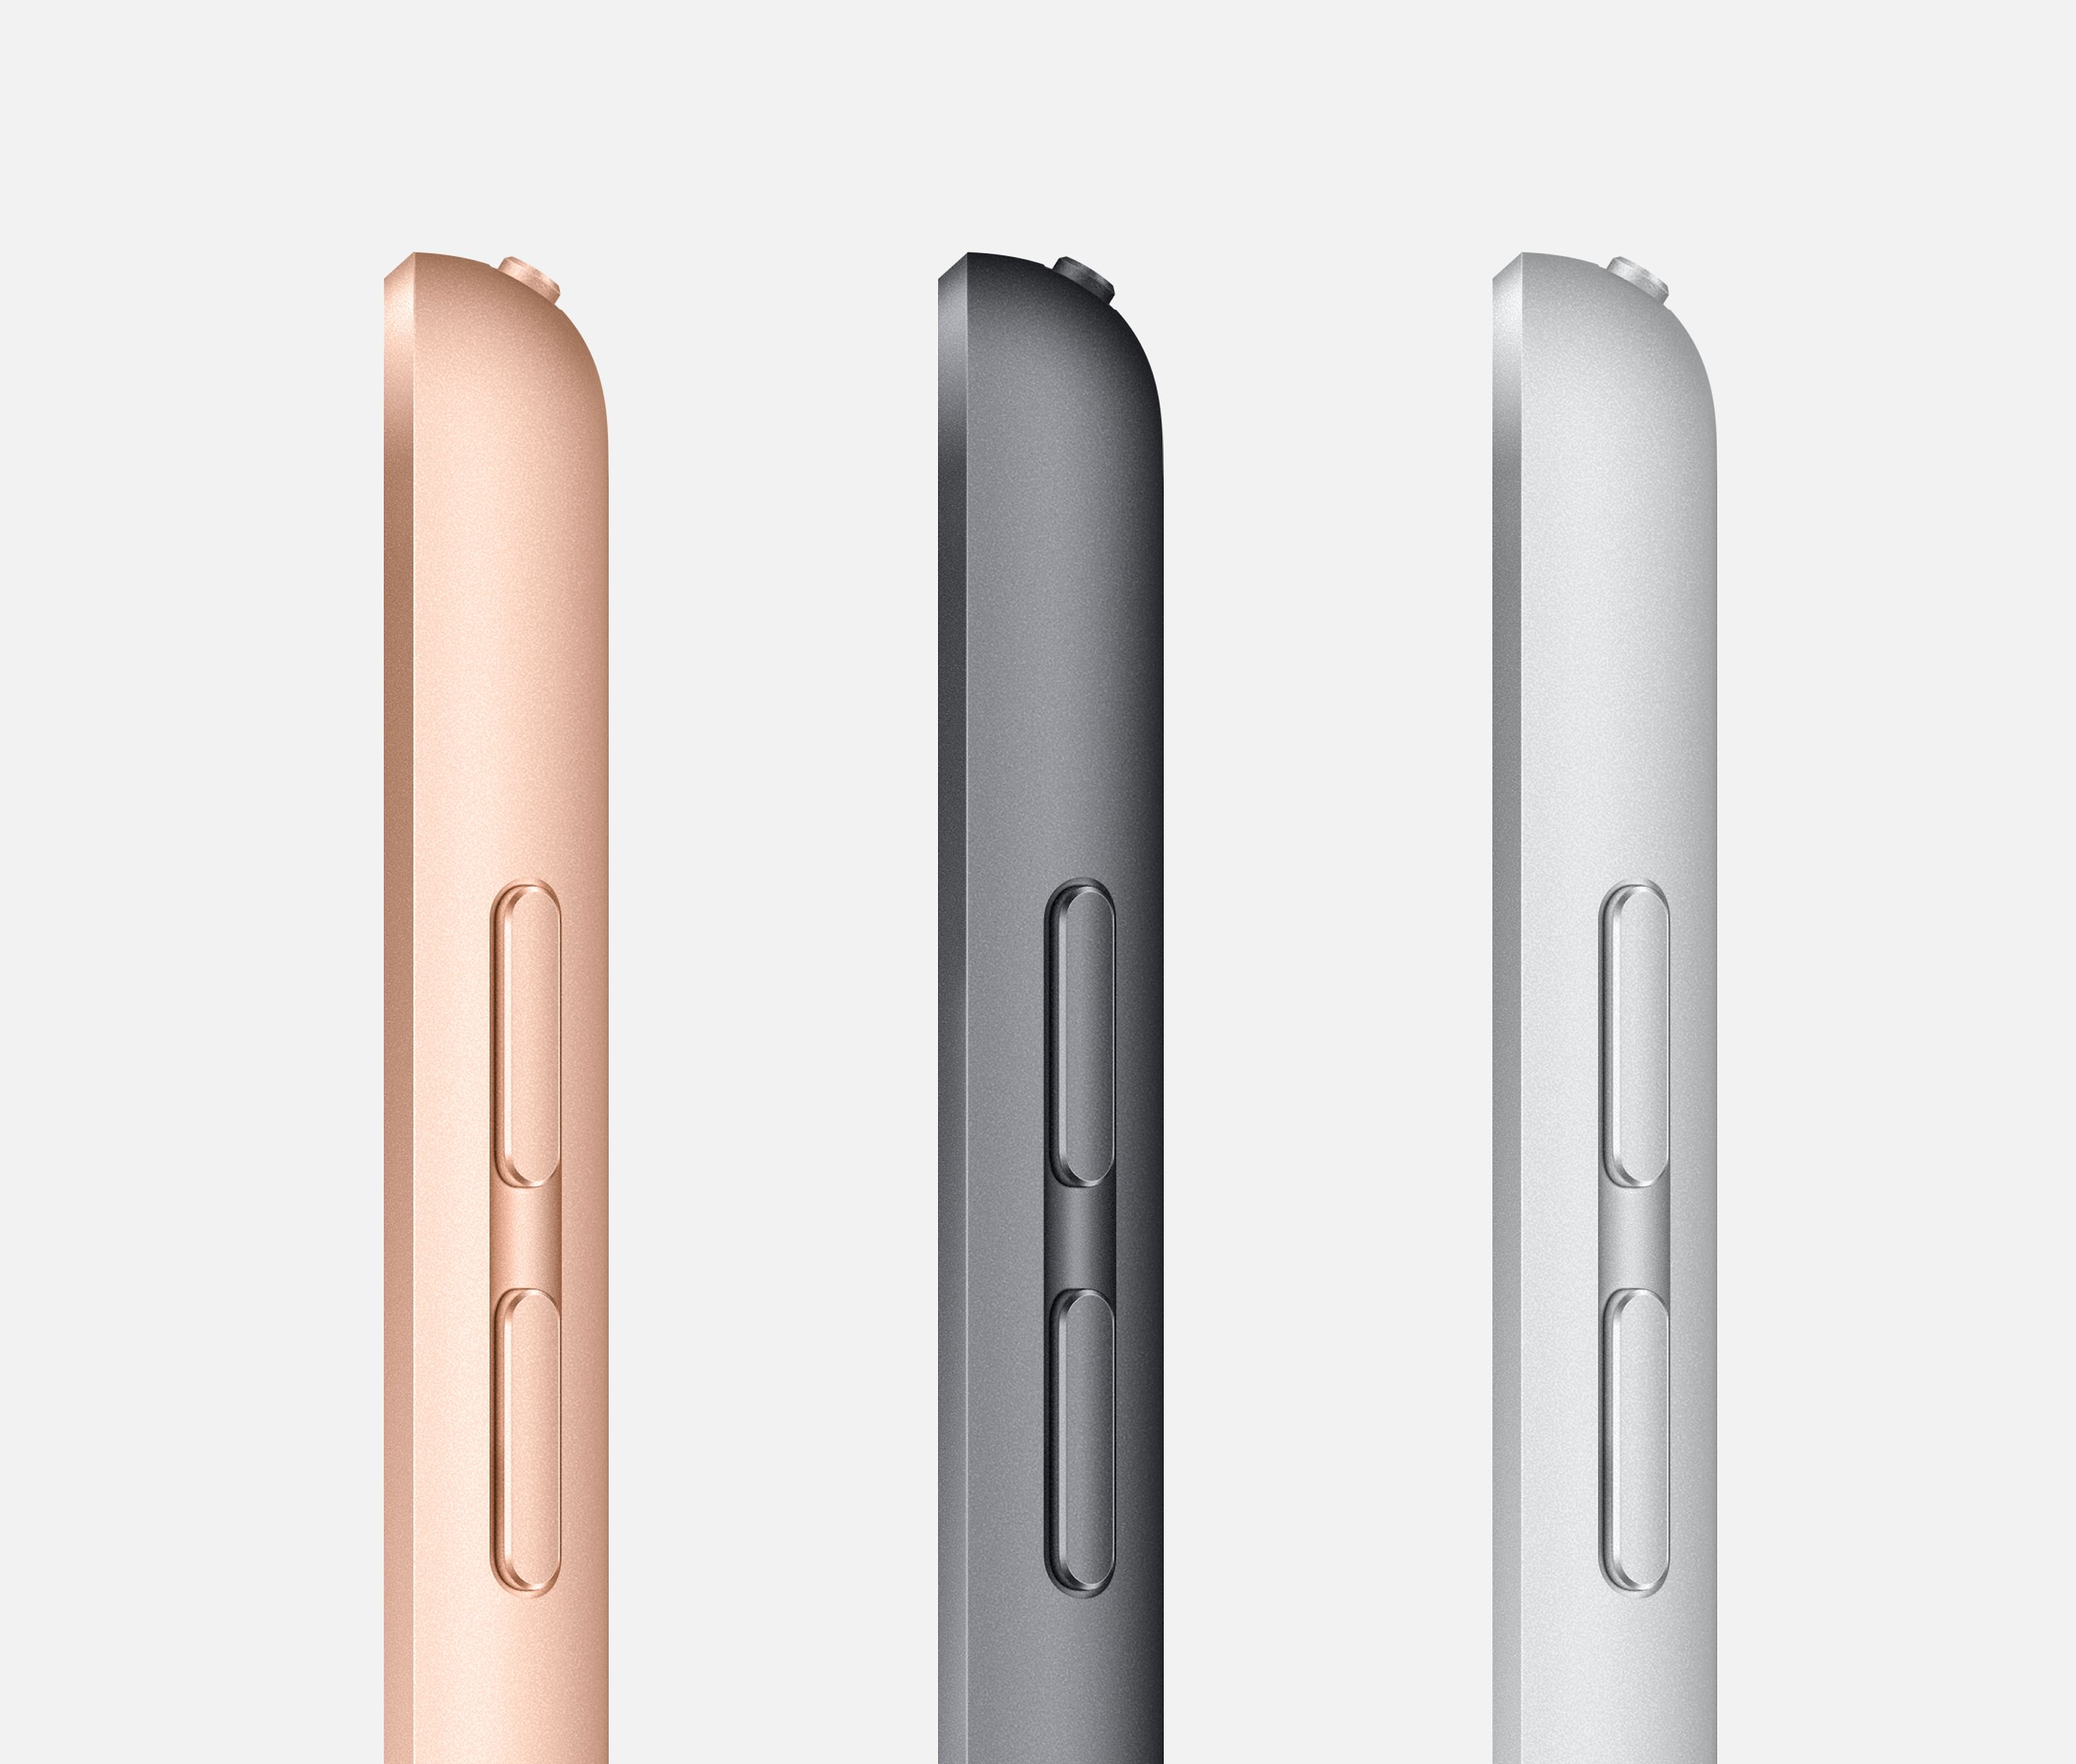 Apple iPad (2019) with 10.2-inch Retina display announced for $329